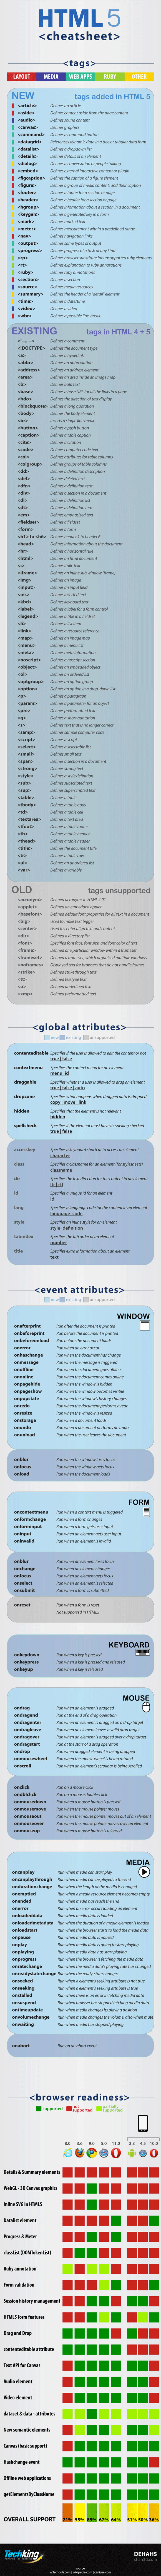 Infographie HTML 5